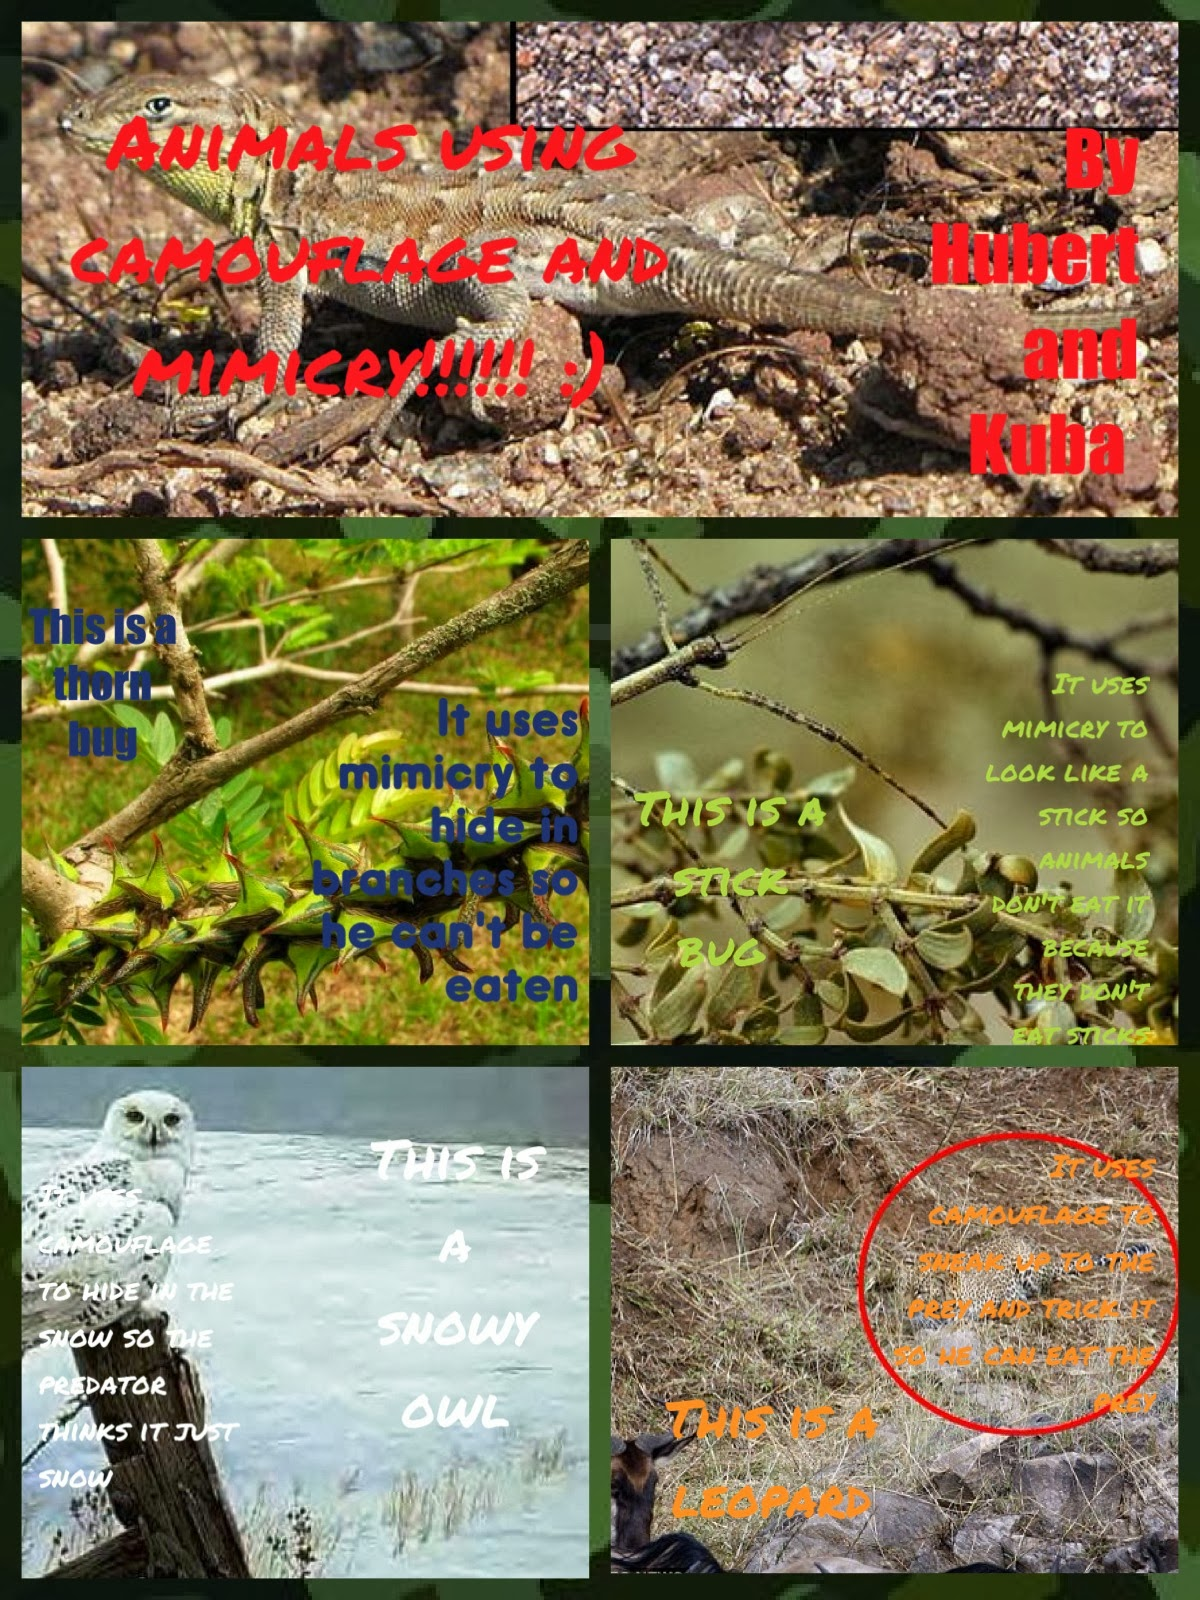 P6 At Stancis Camouflage And Mimicry